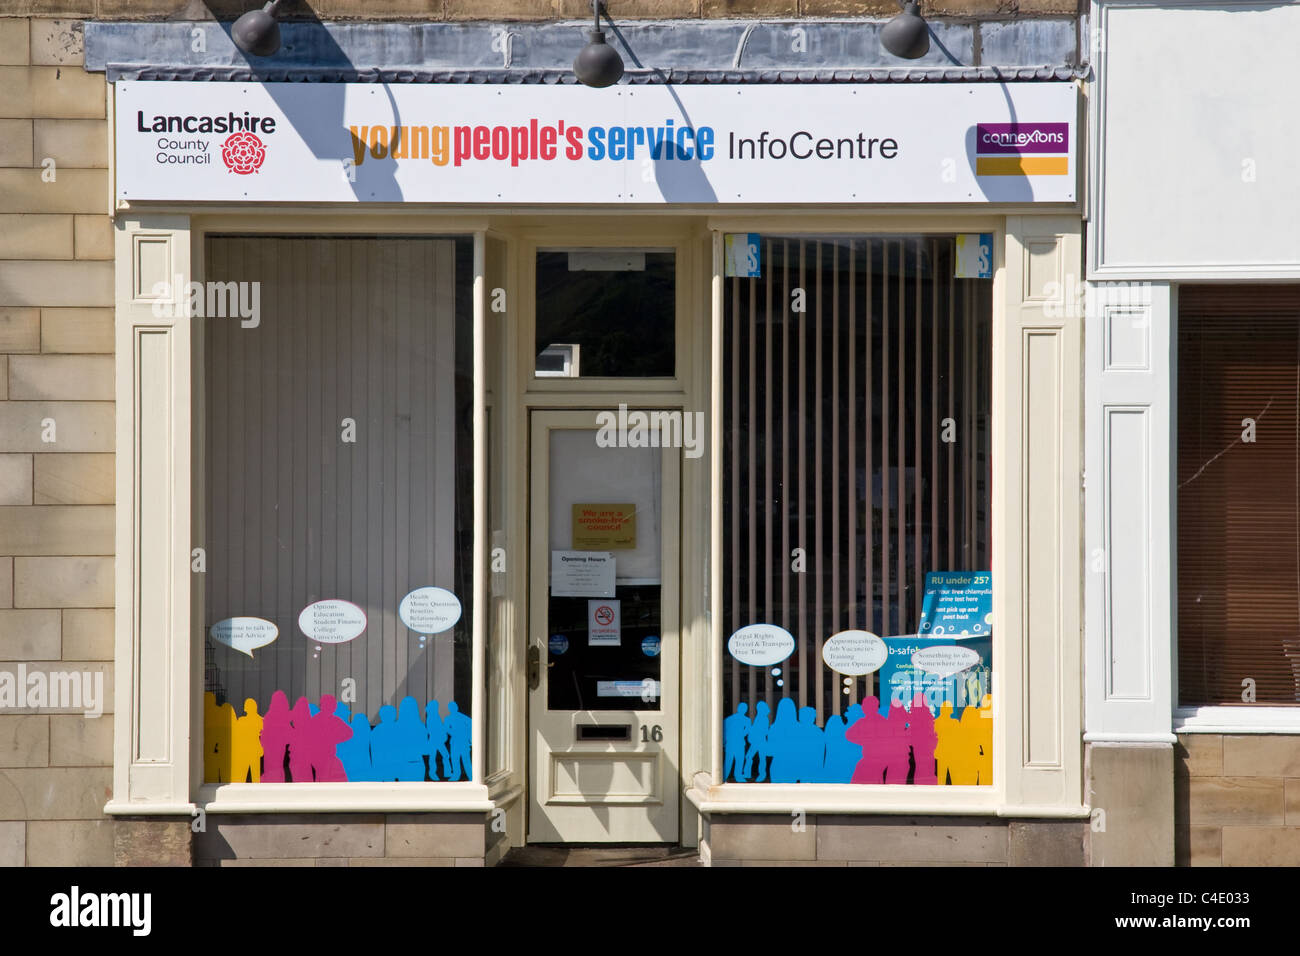 Young peoples service infocentre, Colne, Lancashire, UK. Lancashire County Council/ Connexions. - Stock Image